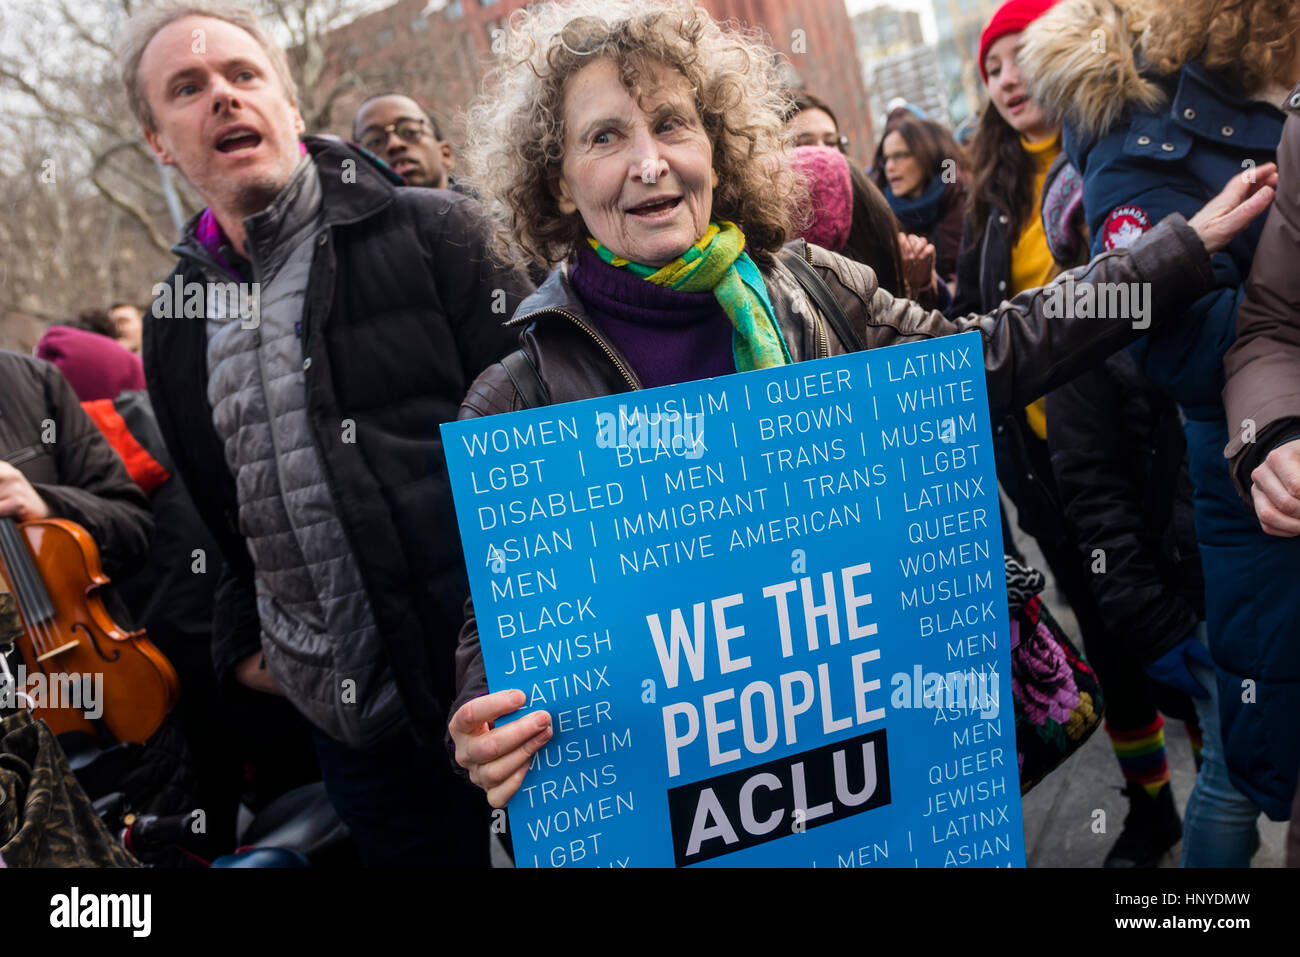 New York, USA 5 February 2017 - THIS IS WHAT DEMOCRACY SOUNDS LIKE Several hundred people gathered beneath the arch - Stock Image